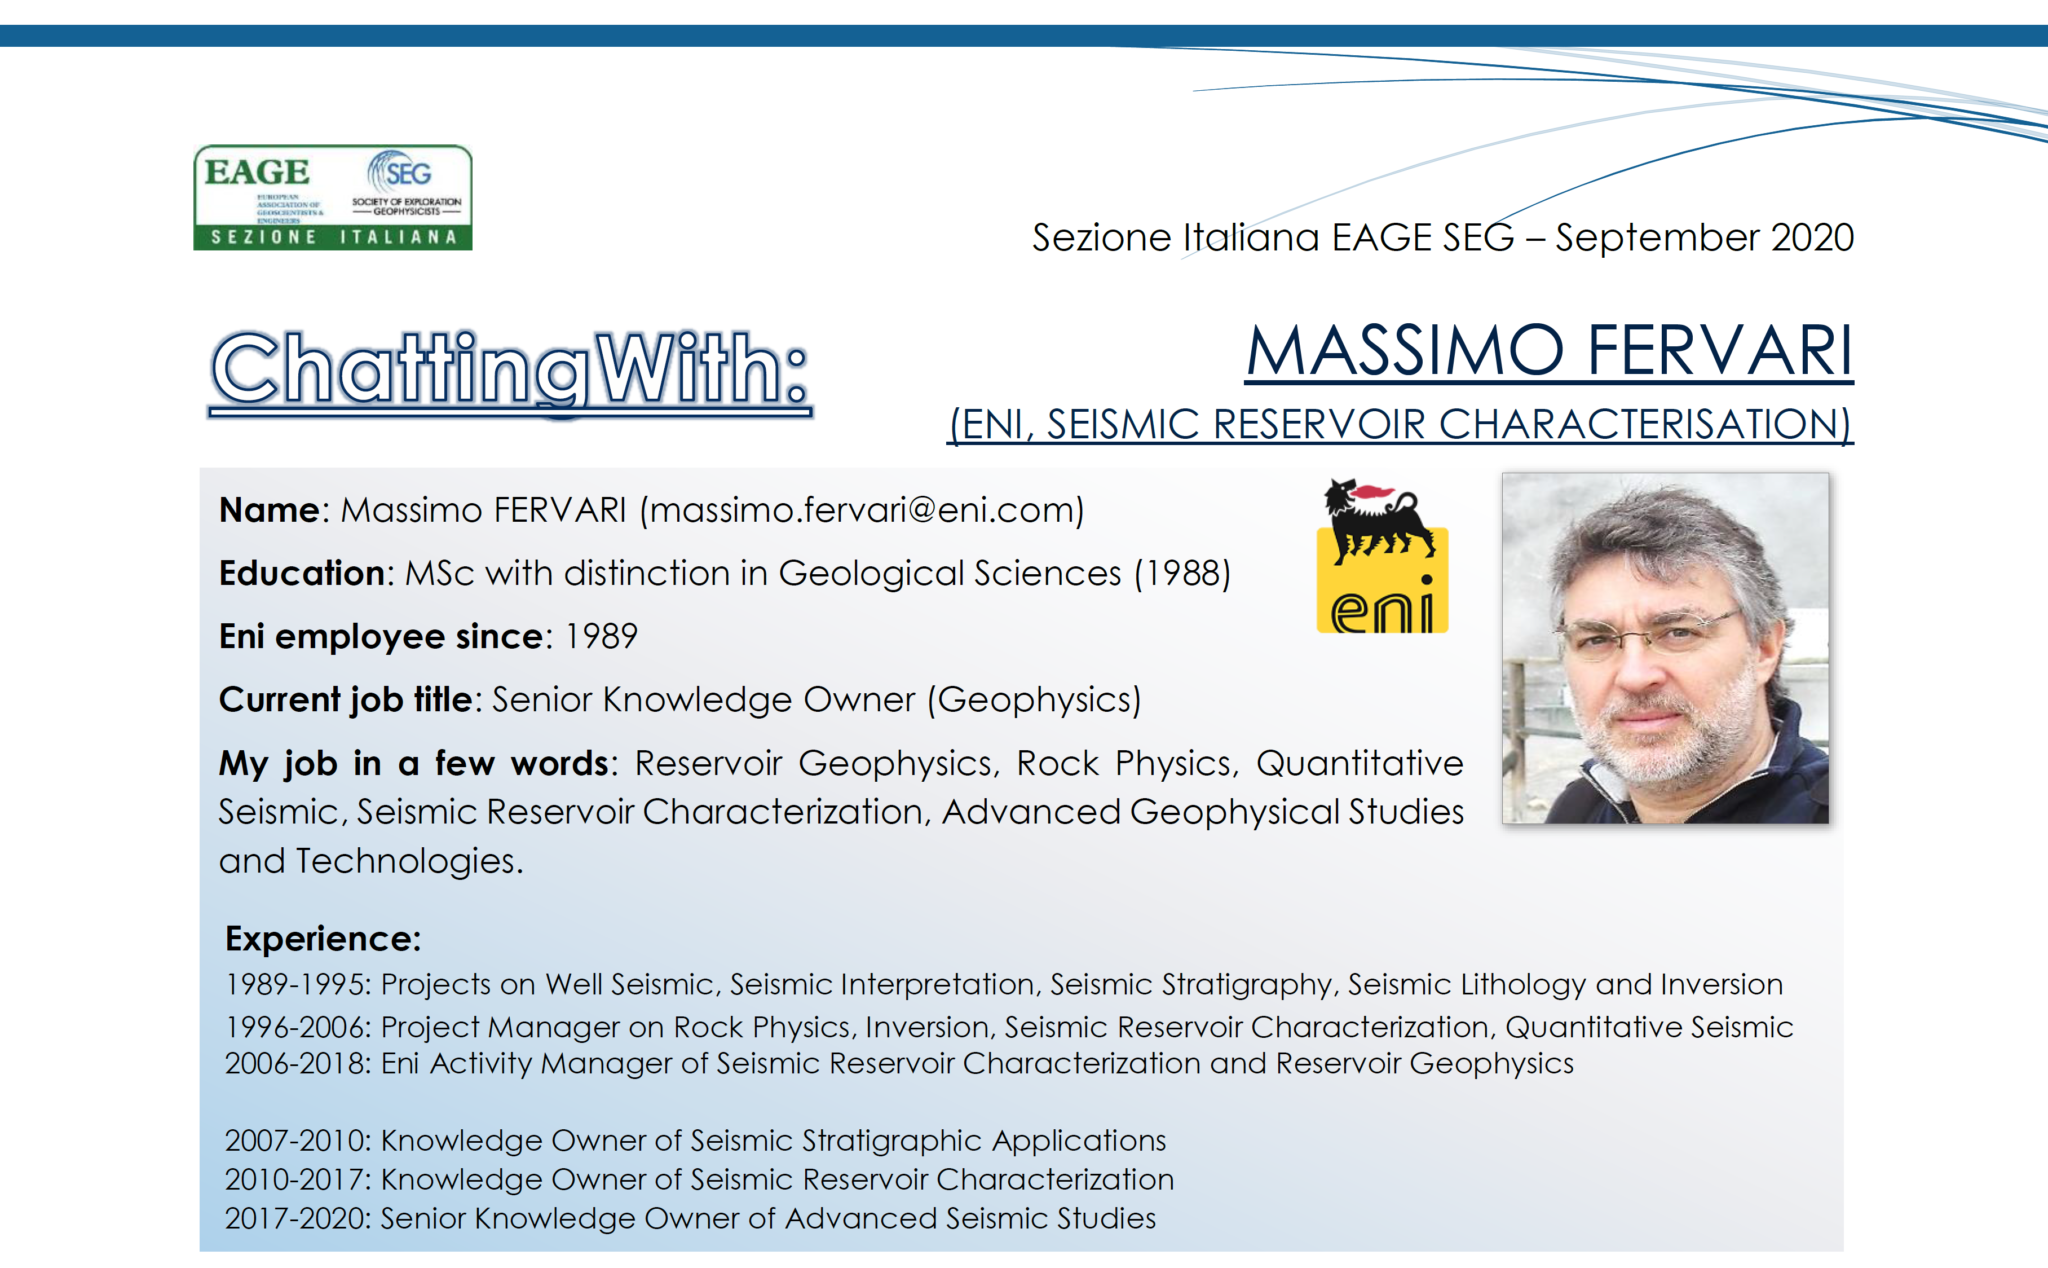 Eni Seismic Reservoir Characterisation Team – Massimo Fervari